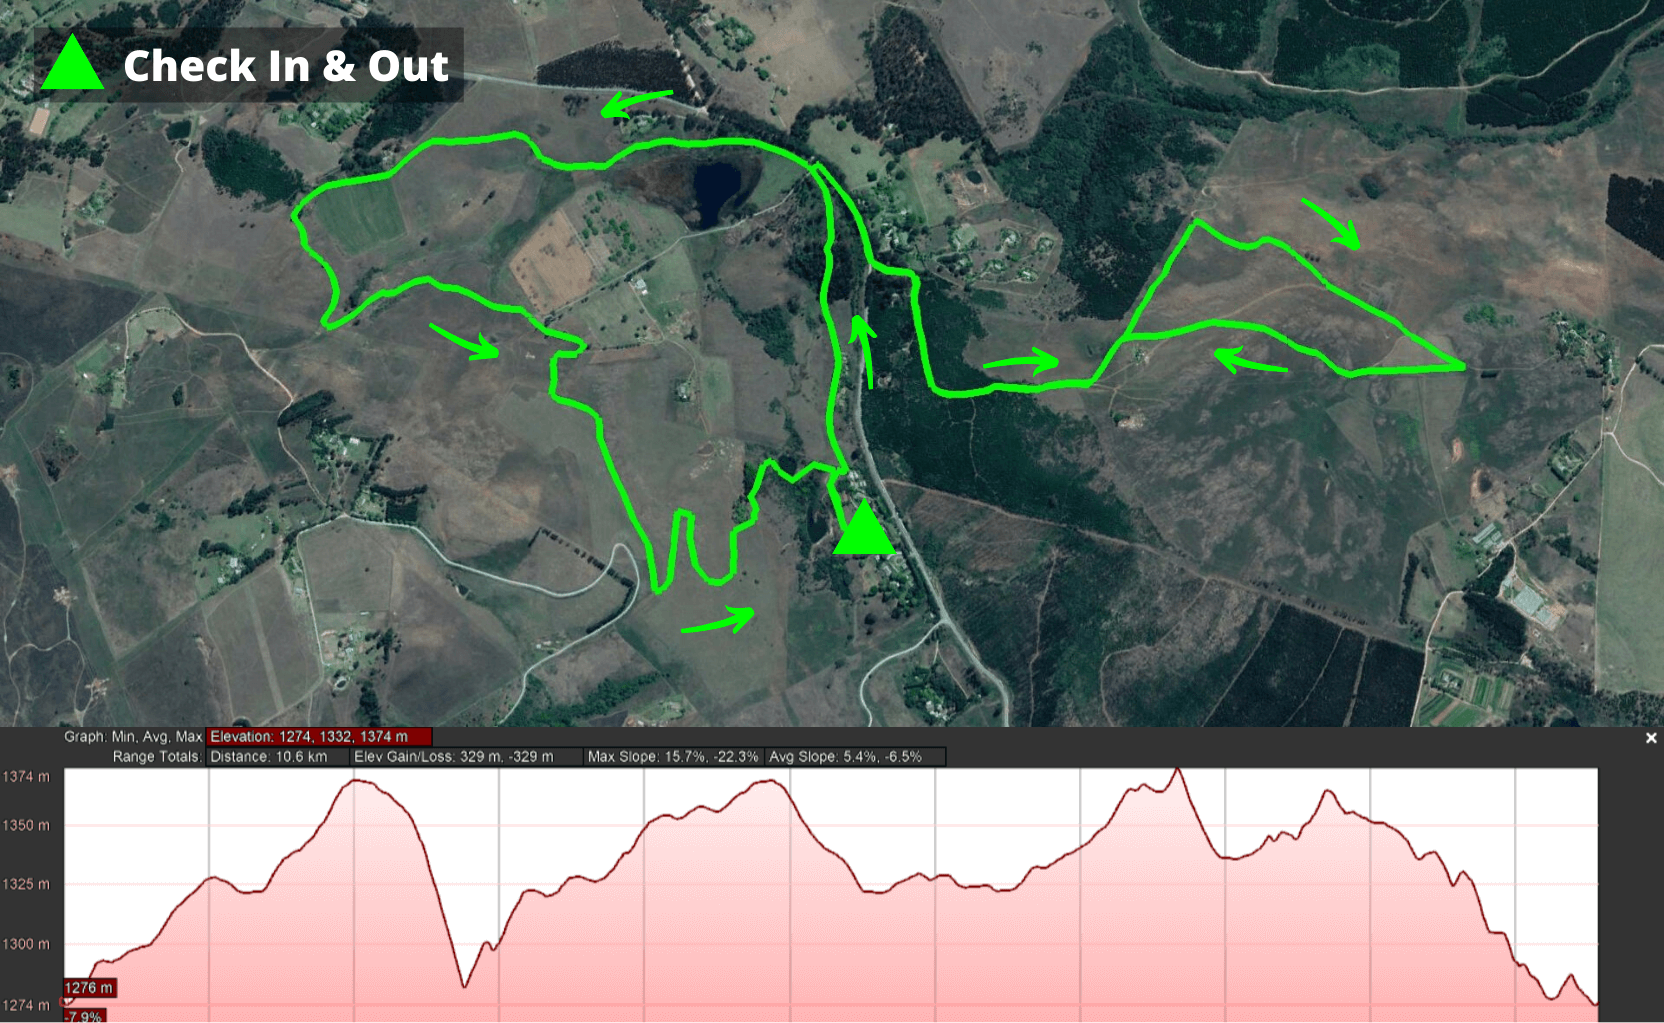 KZNTR The Barn Owl Jun20 - 10km Course and Profile (Directioned) 2020-06-12 V1